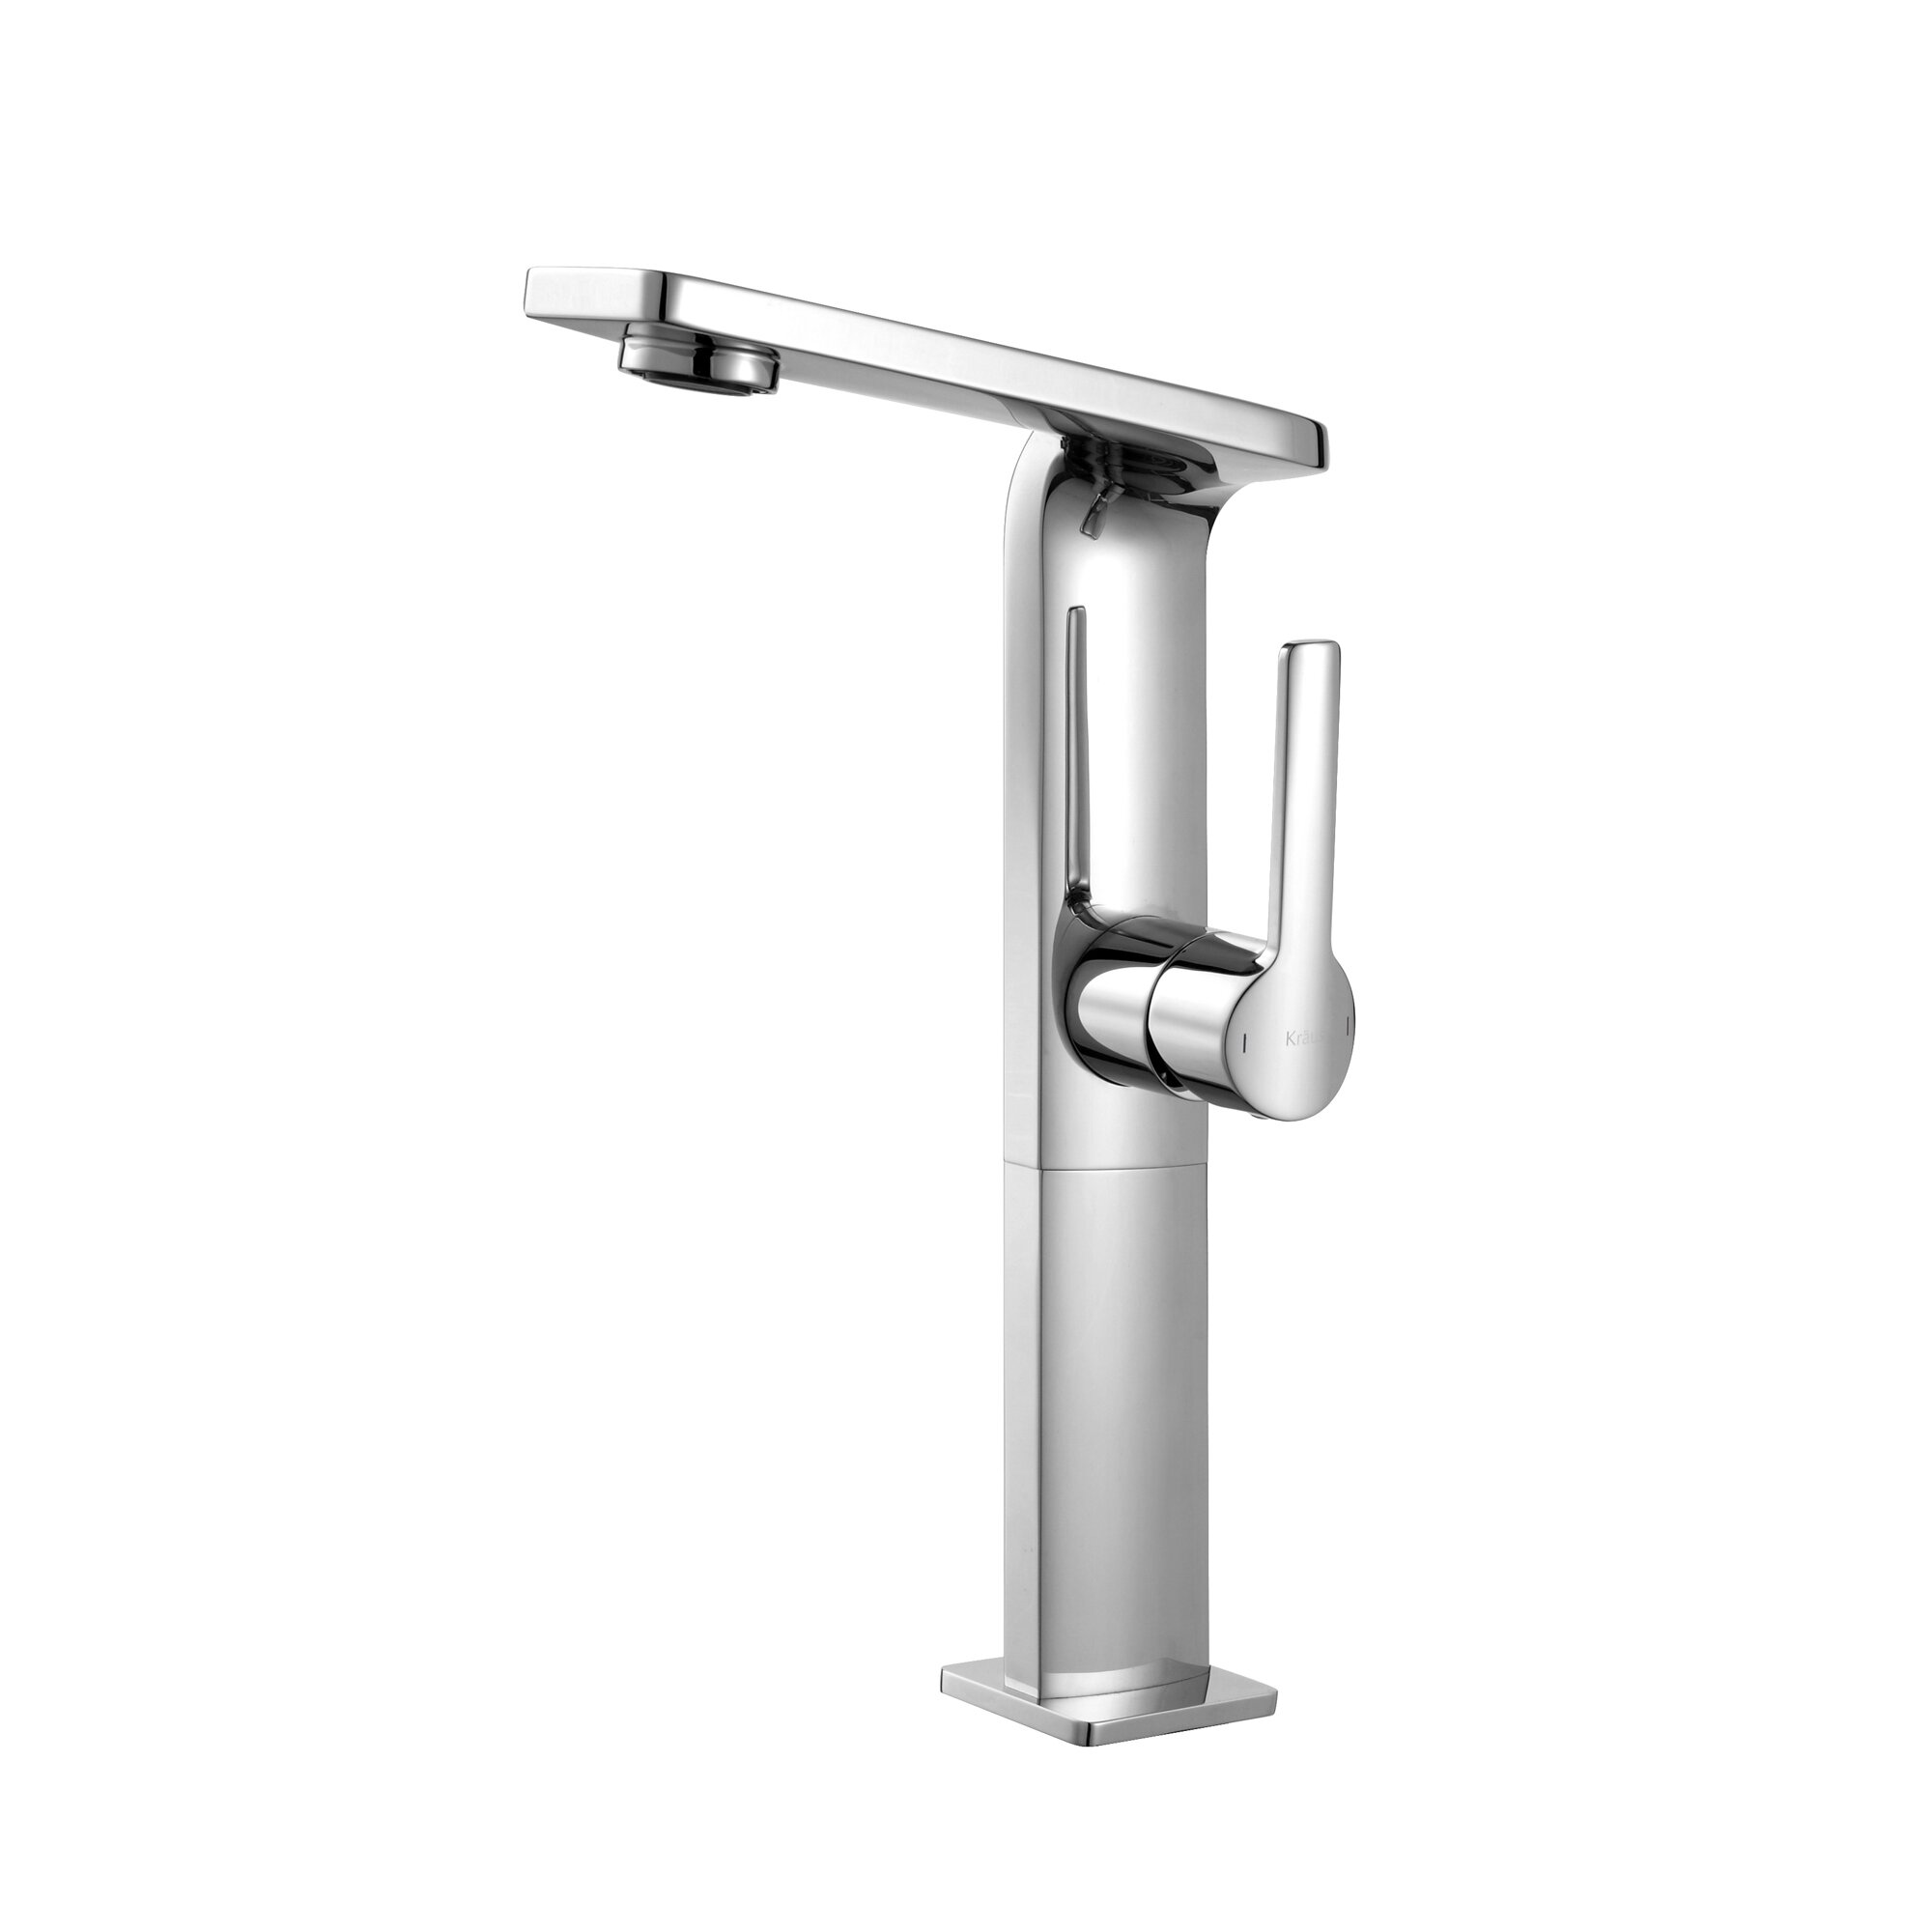 Kraus Faucets Reviews : Kraus Exquisite Novus Single Lever Vessel Faucet & Reviews Wayfair